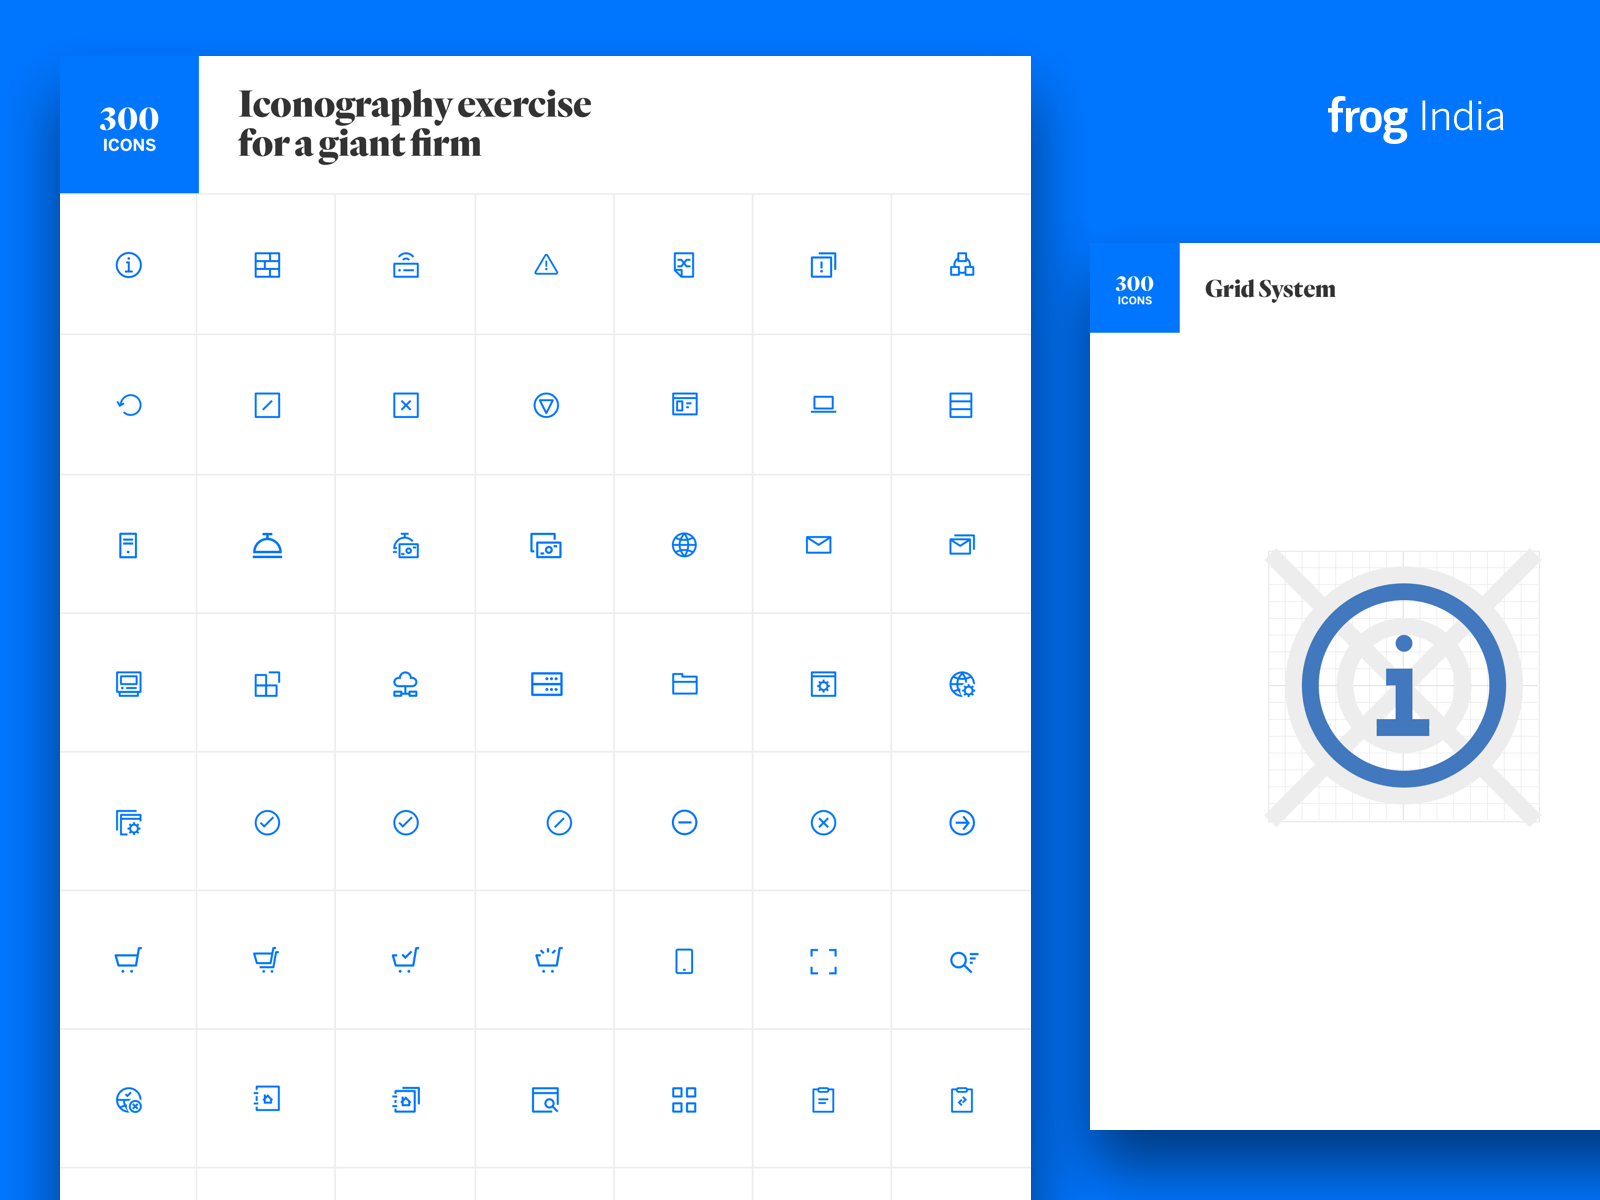 300 icons frog india india interface ui organisation firm grid iconography design frog icons sketch